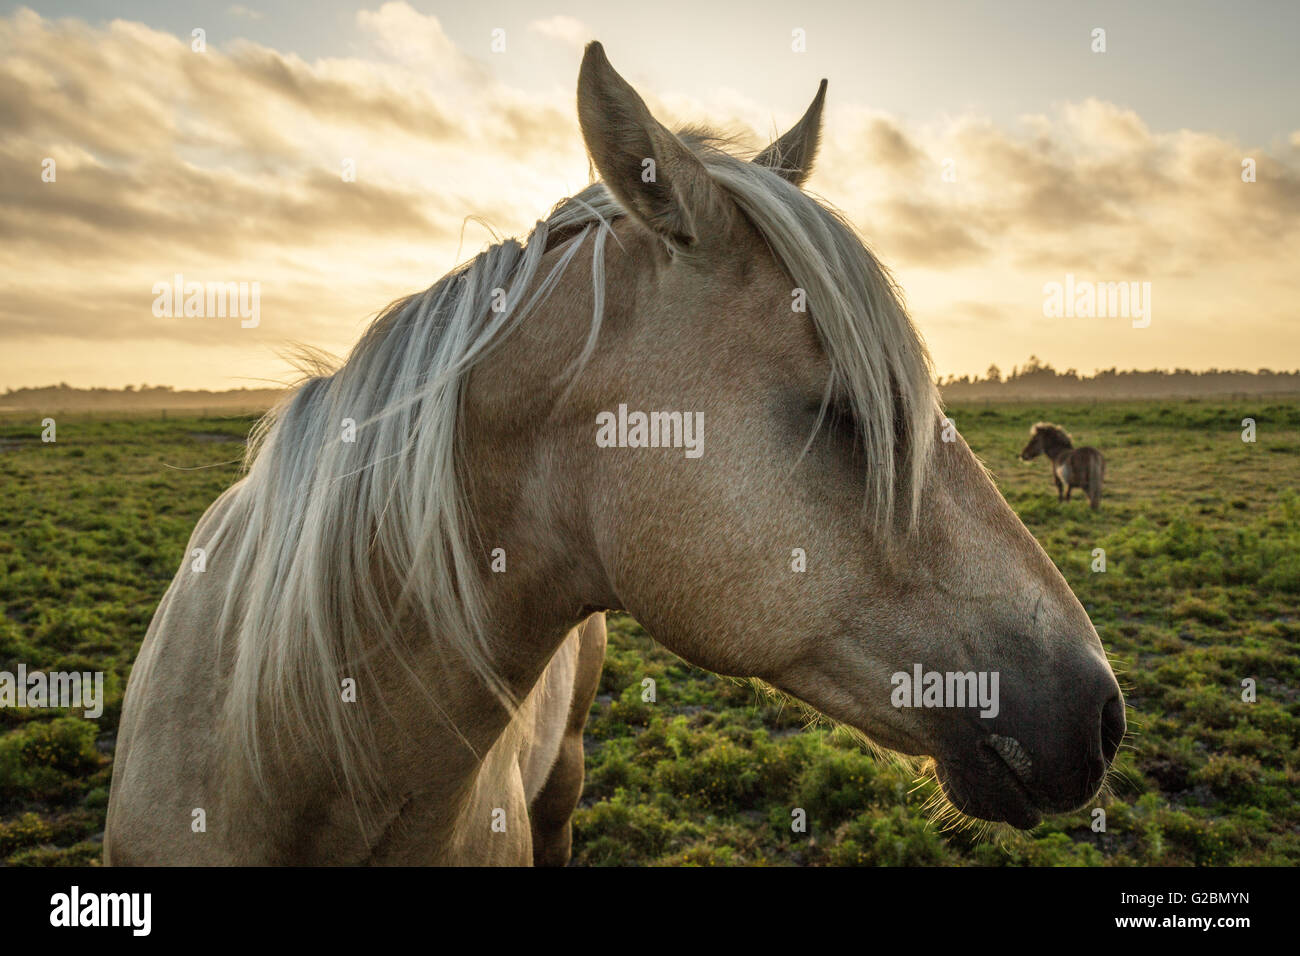 Profile of a horse, close-up, with a mini horse in the background. - Stock Image